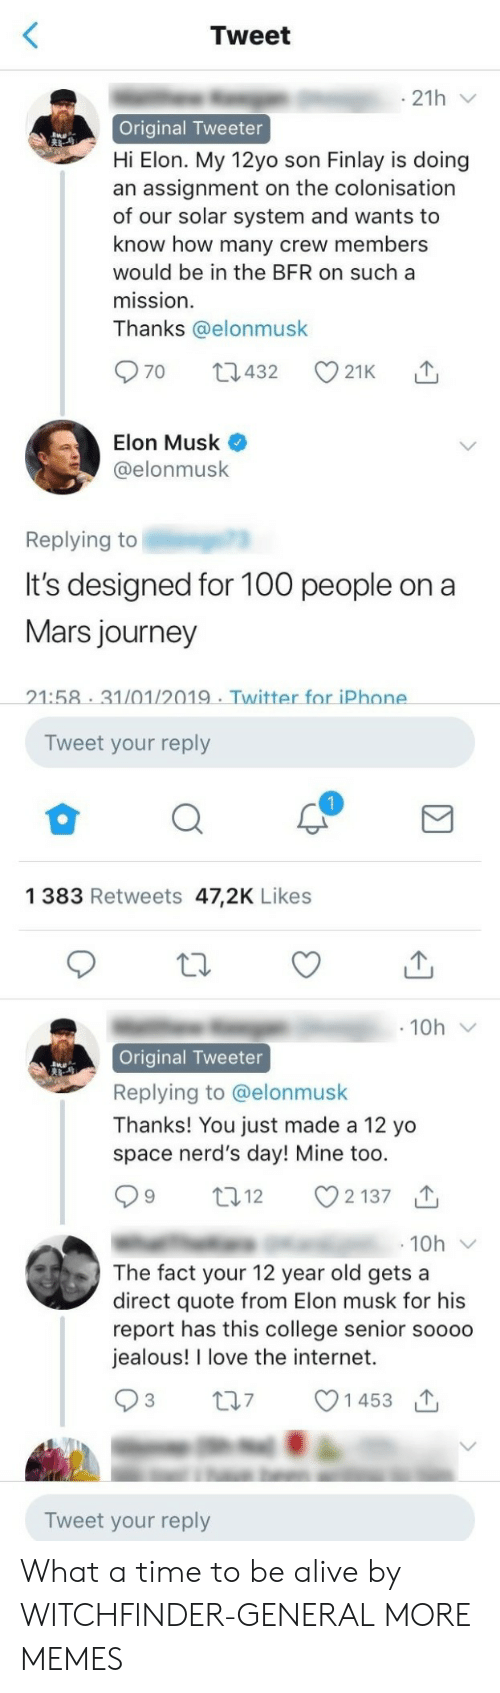 Thanks You: Tweet  21h  Original Tweeter  Hi Elon. My 12yo son Finlay is doing  an assignment on the colonisation  of our solar system and wants to  know how many crew members  would be in the BFR on sucha  mission  Thanks @elonmusk  Elon Musk  @elonmusk  Replying to  It's designed for 10o people ona  Mars journey  21:58 31/01/2019 Twitter for iPhone  Tweet your reply  1 383 Retweets 47,2K Likes  Original Tweeter  Replying to @elonmusk  Thanks! You just made a 12 yo  space nerd's day! Mine too  12  2137  10h  The fact your 12 year old gets a  direct quote from Elon musk for his  report has this college senior soooo  jealous! I love the internet.  t07 1453  Tweet your reply What a time to be alive by WITCHFlNDER-GENERAL MORE MEMES